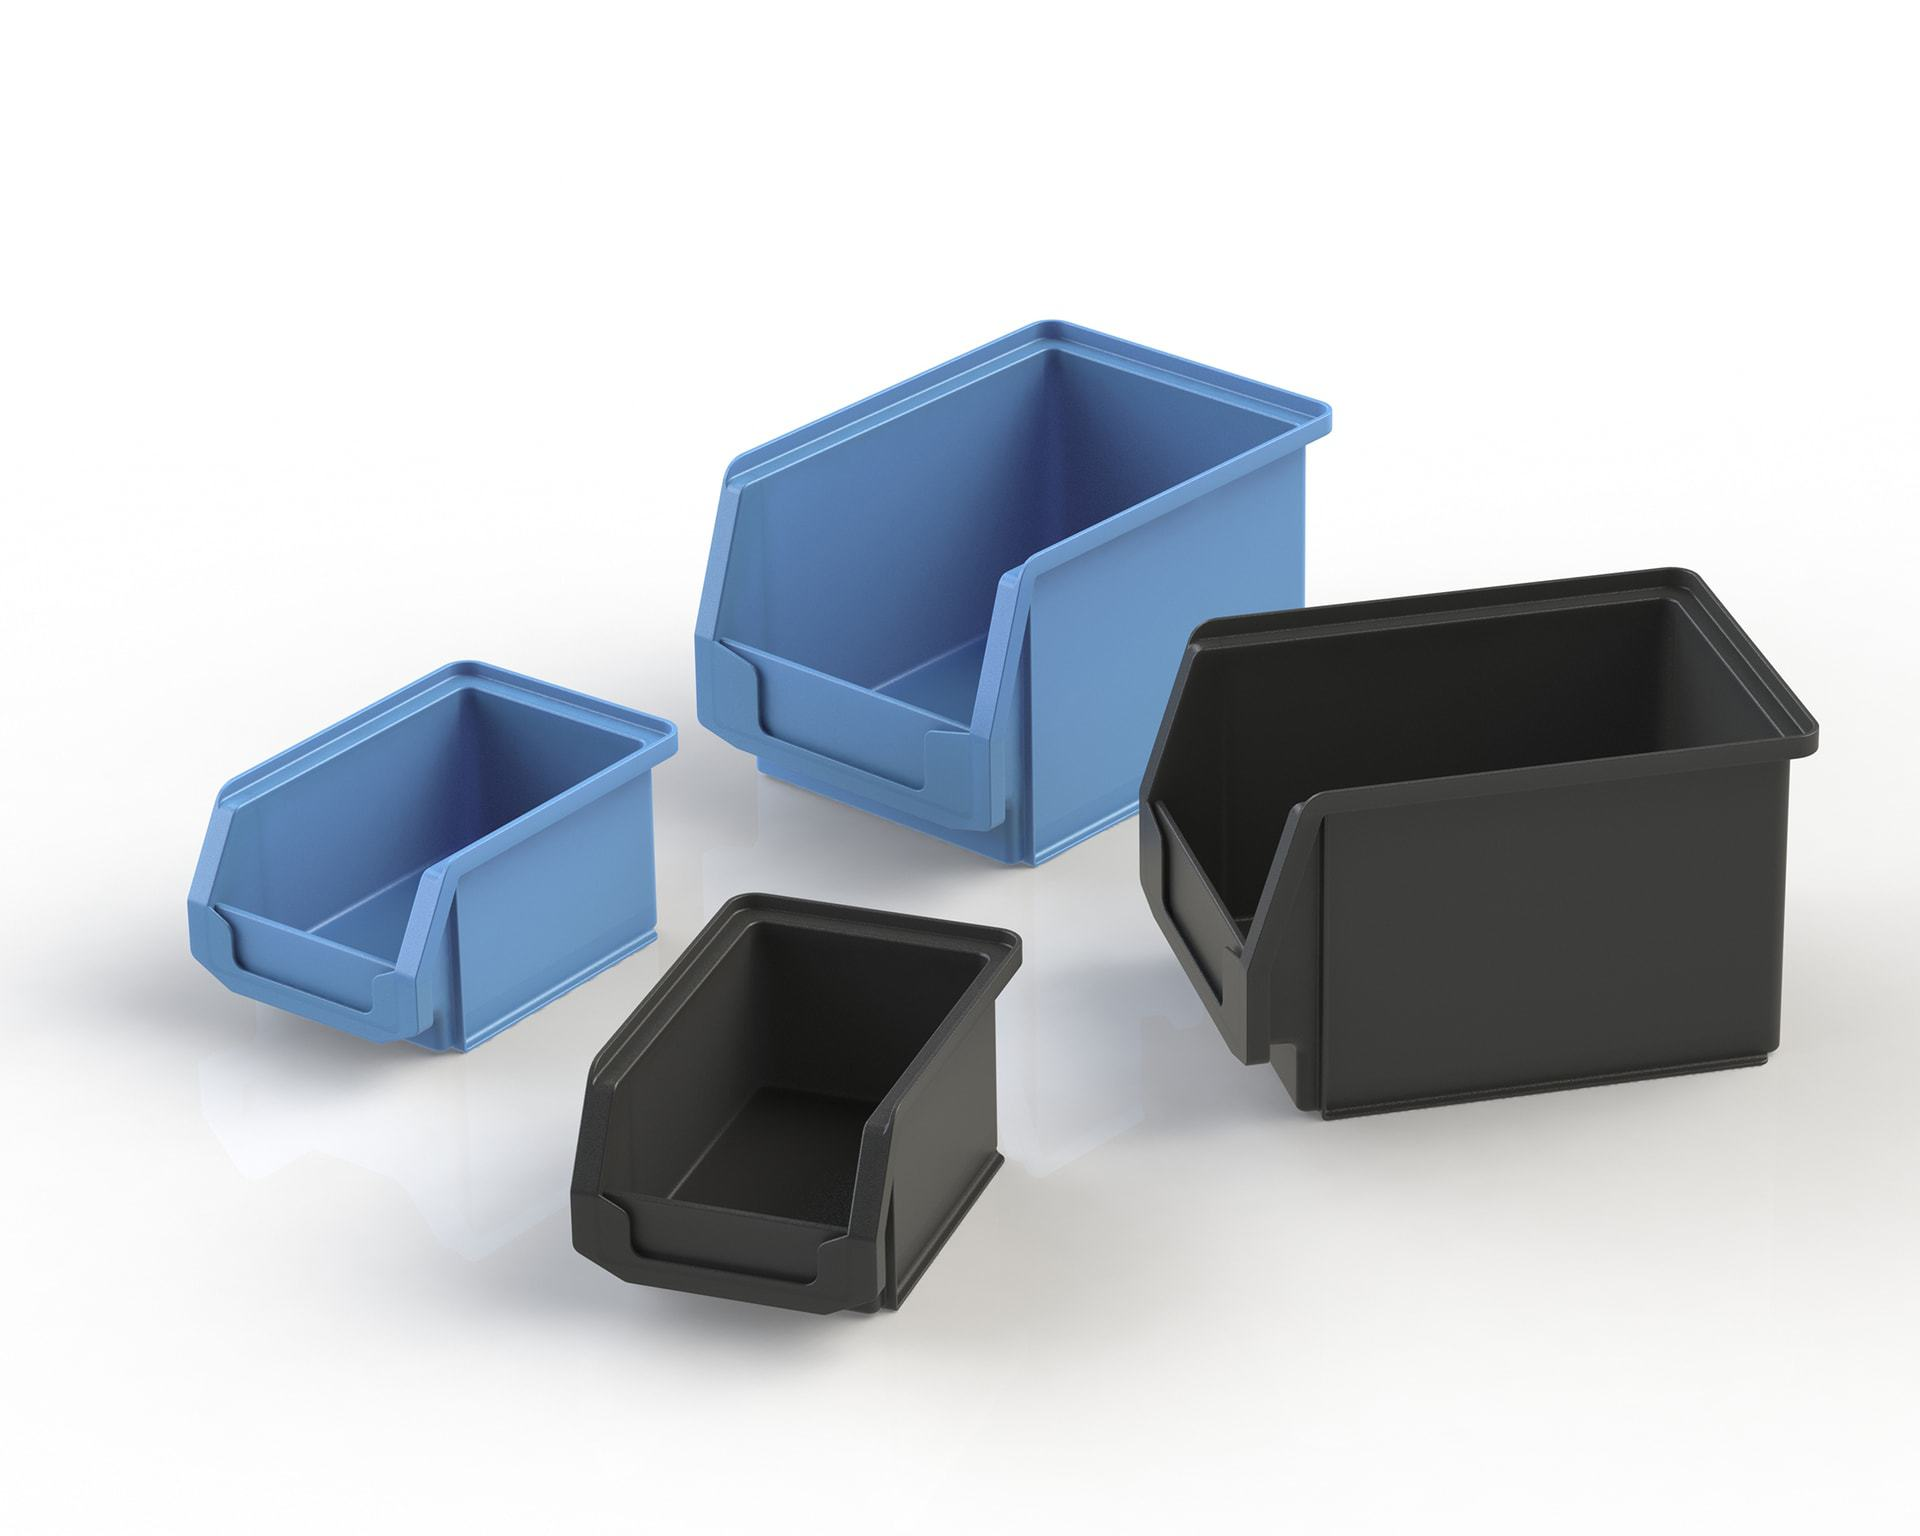 PEK3 Easytube Plastic Accessories Open Fronted Storage Boxes